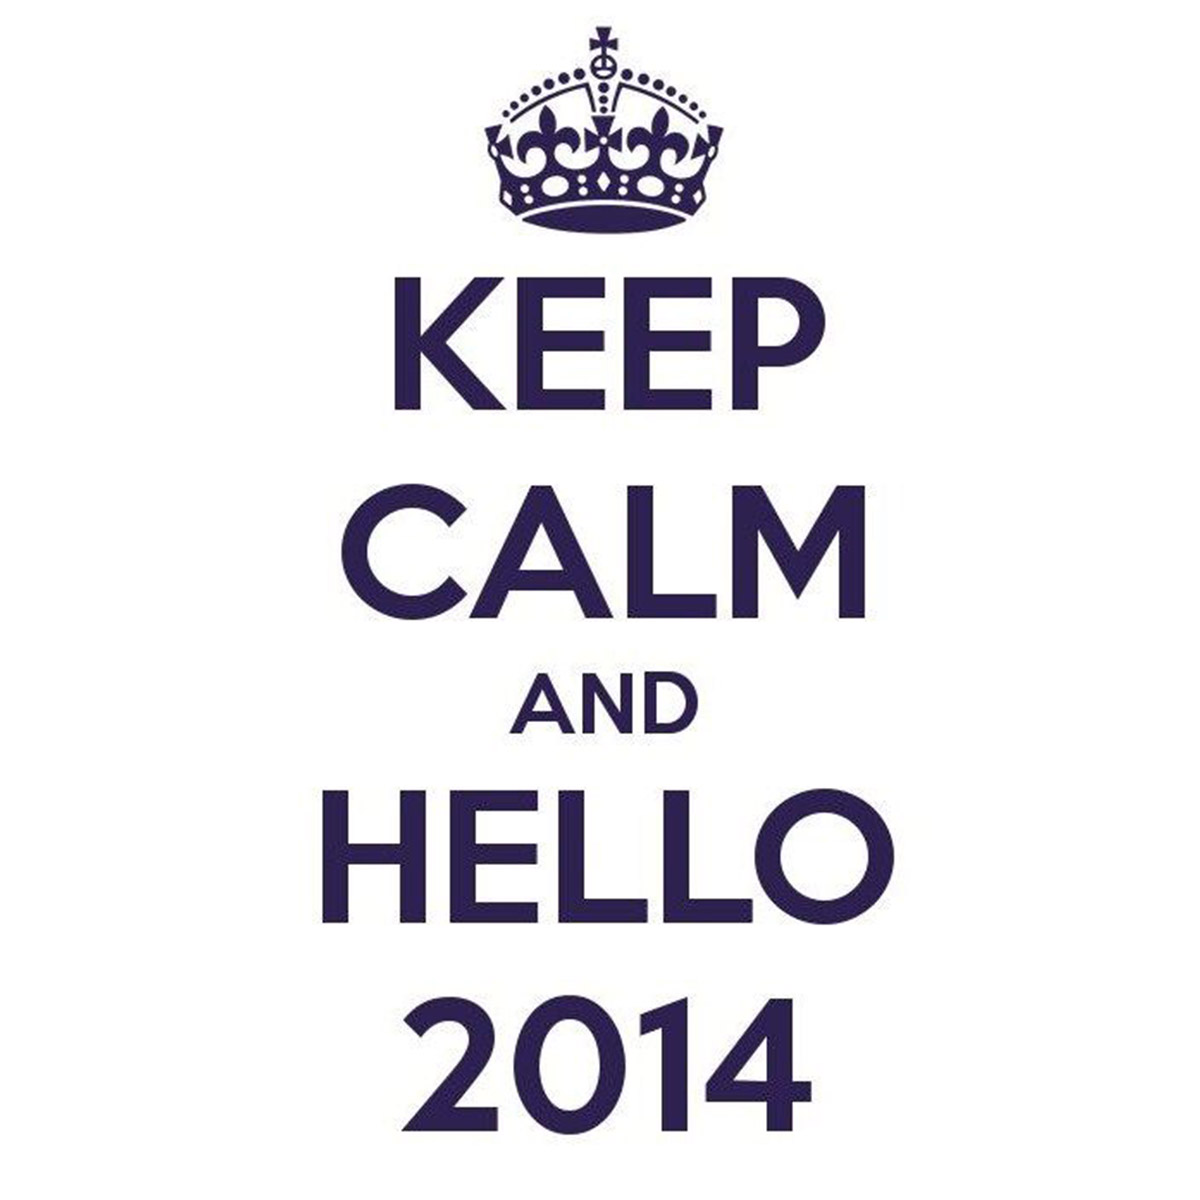 Keep calm and hello 2014 copie